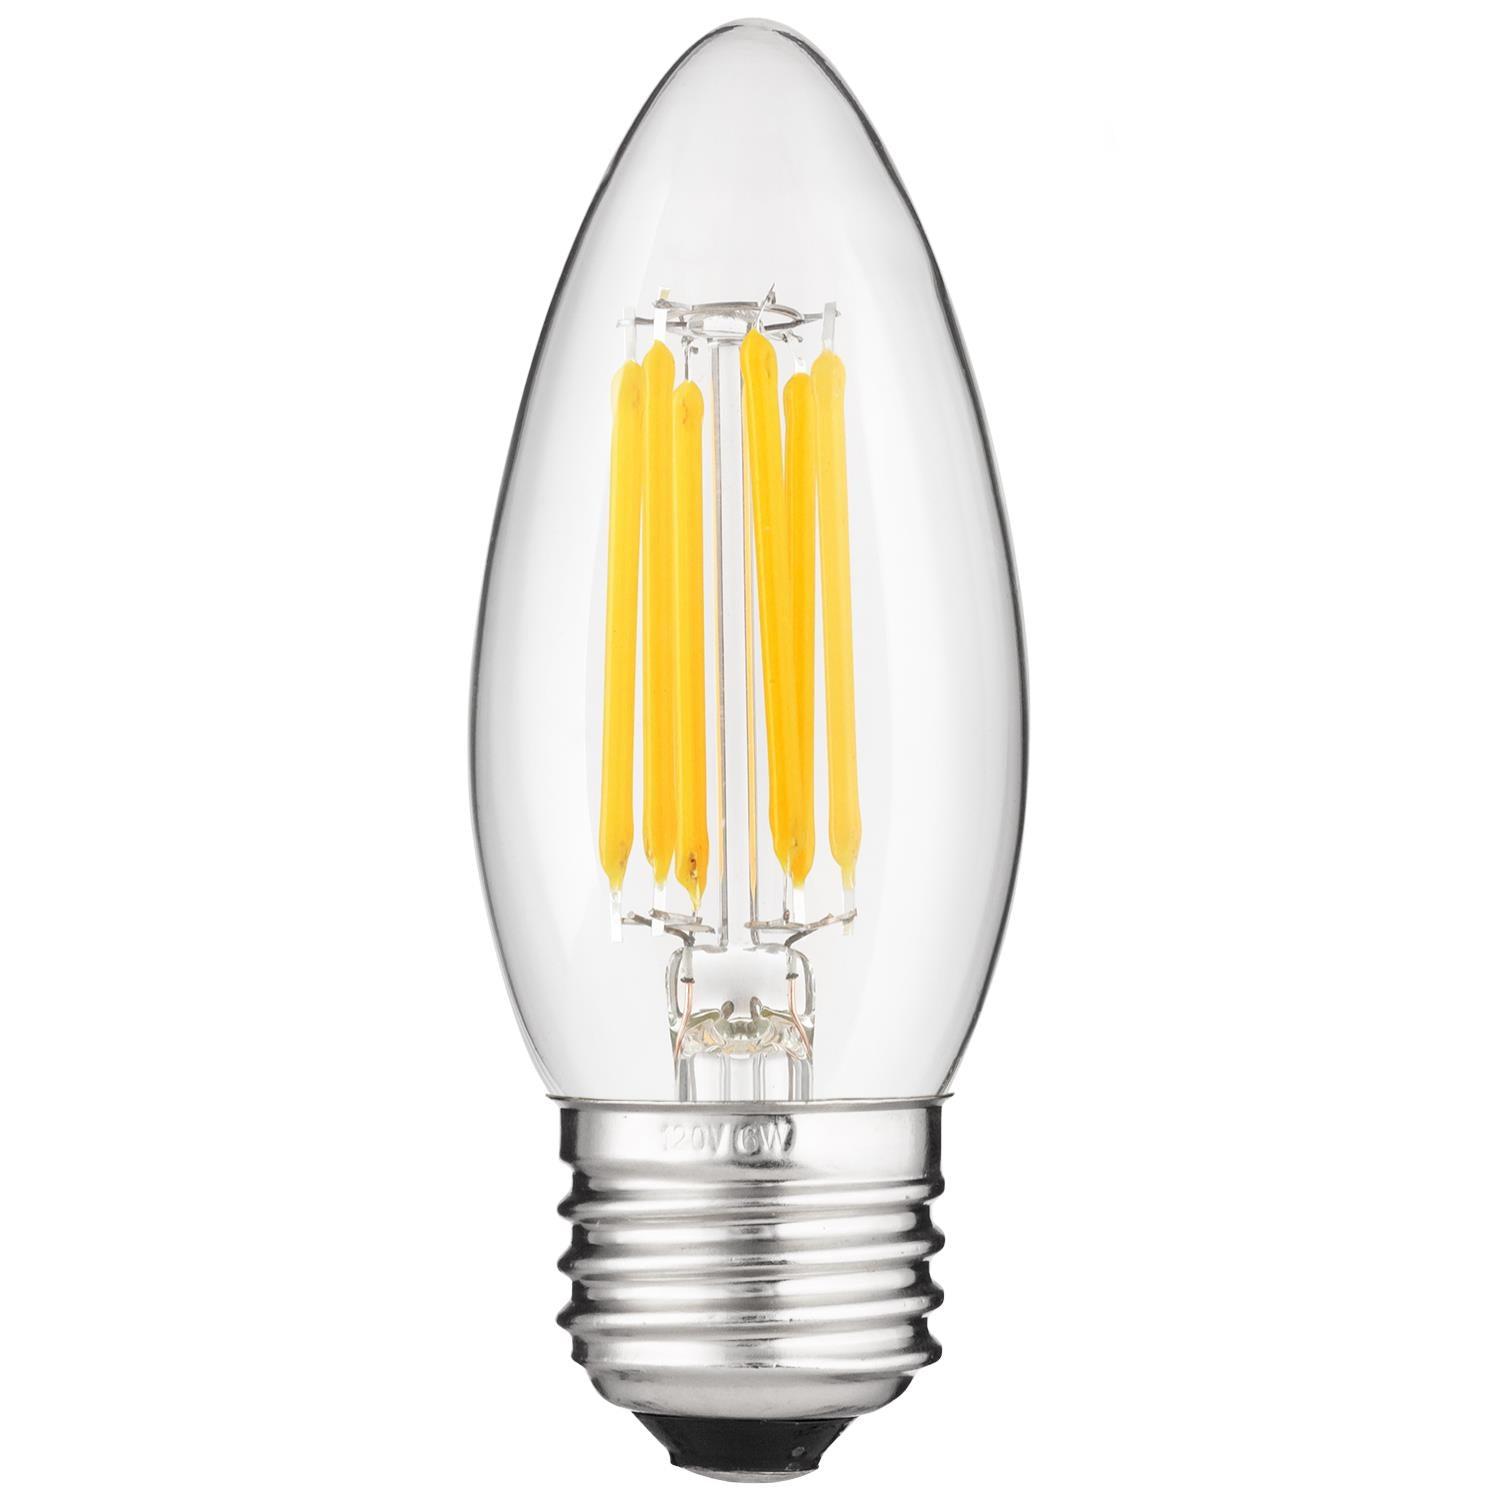 SUNLITE 5w E26 Medium Screw Base LED Filament B11 Torpedo Tip 2700K Warm White